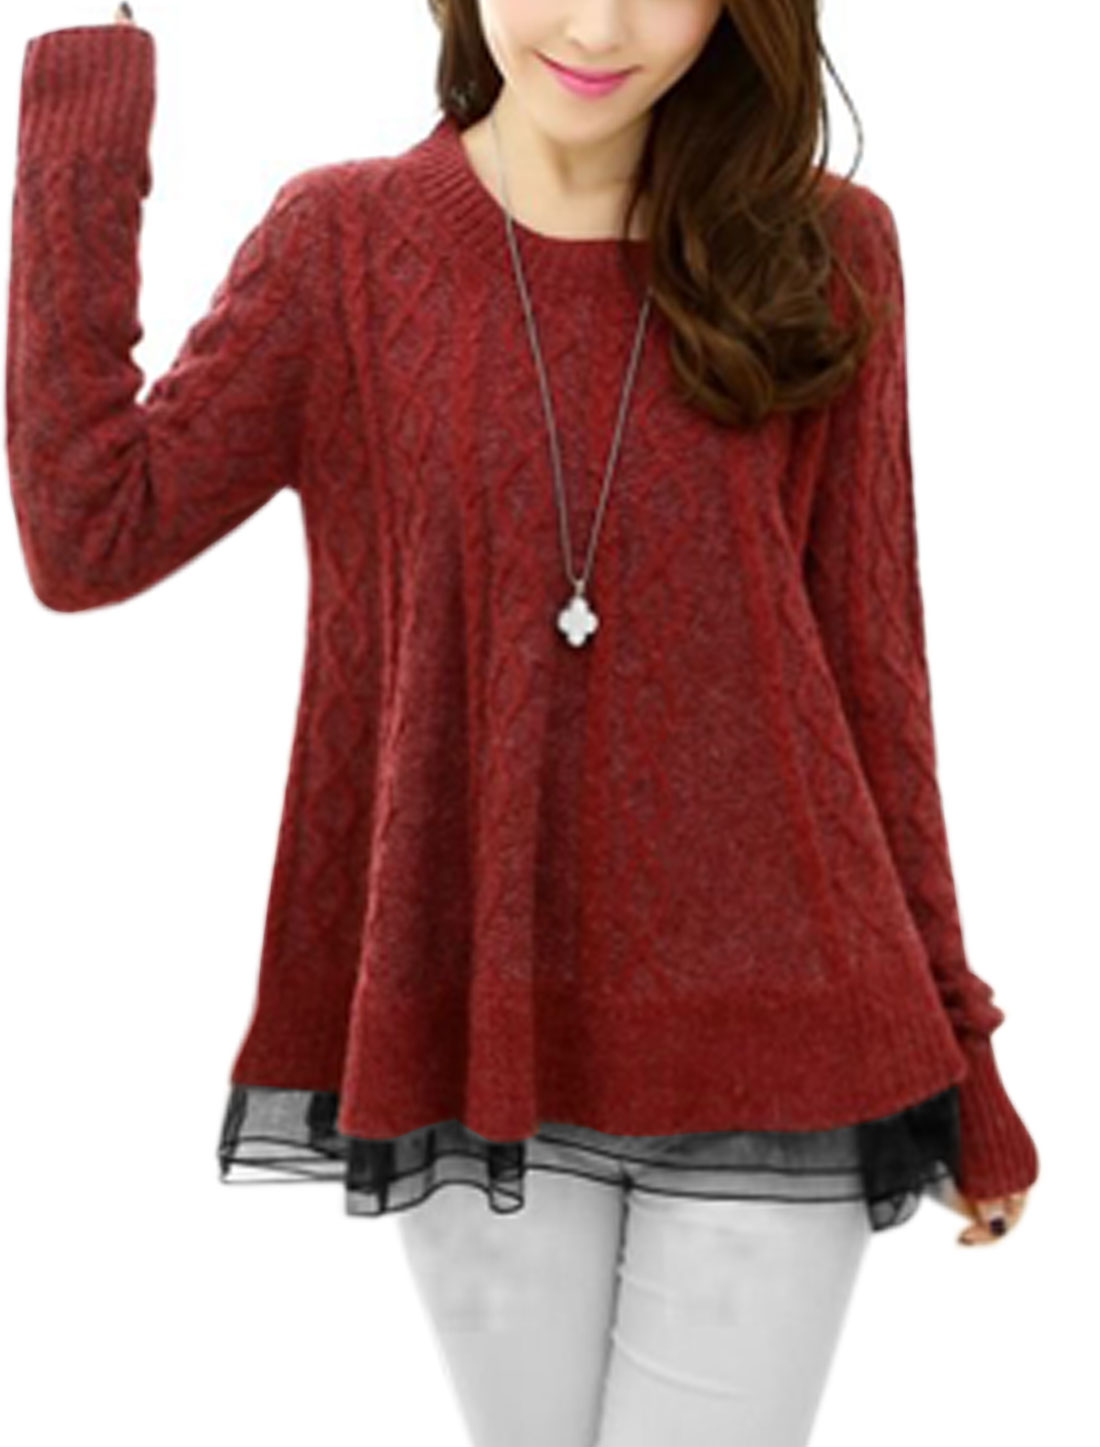 Woman Slipover Organza Panel Loose Fit Knitted Sweater Burgundy XS